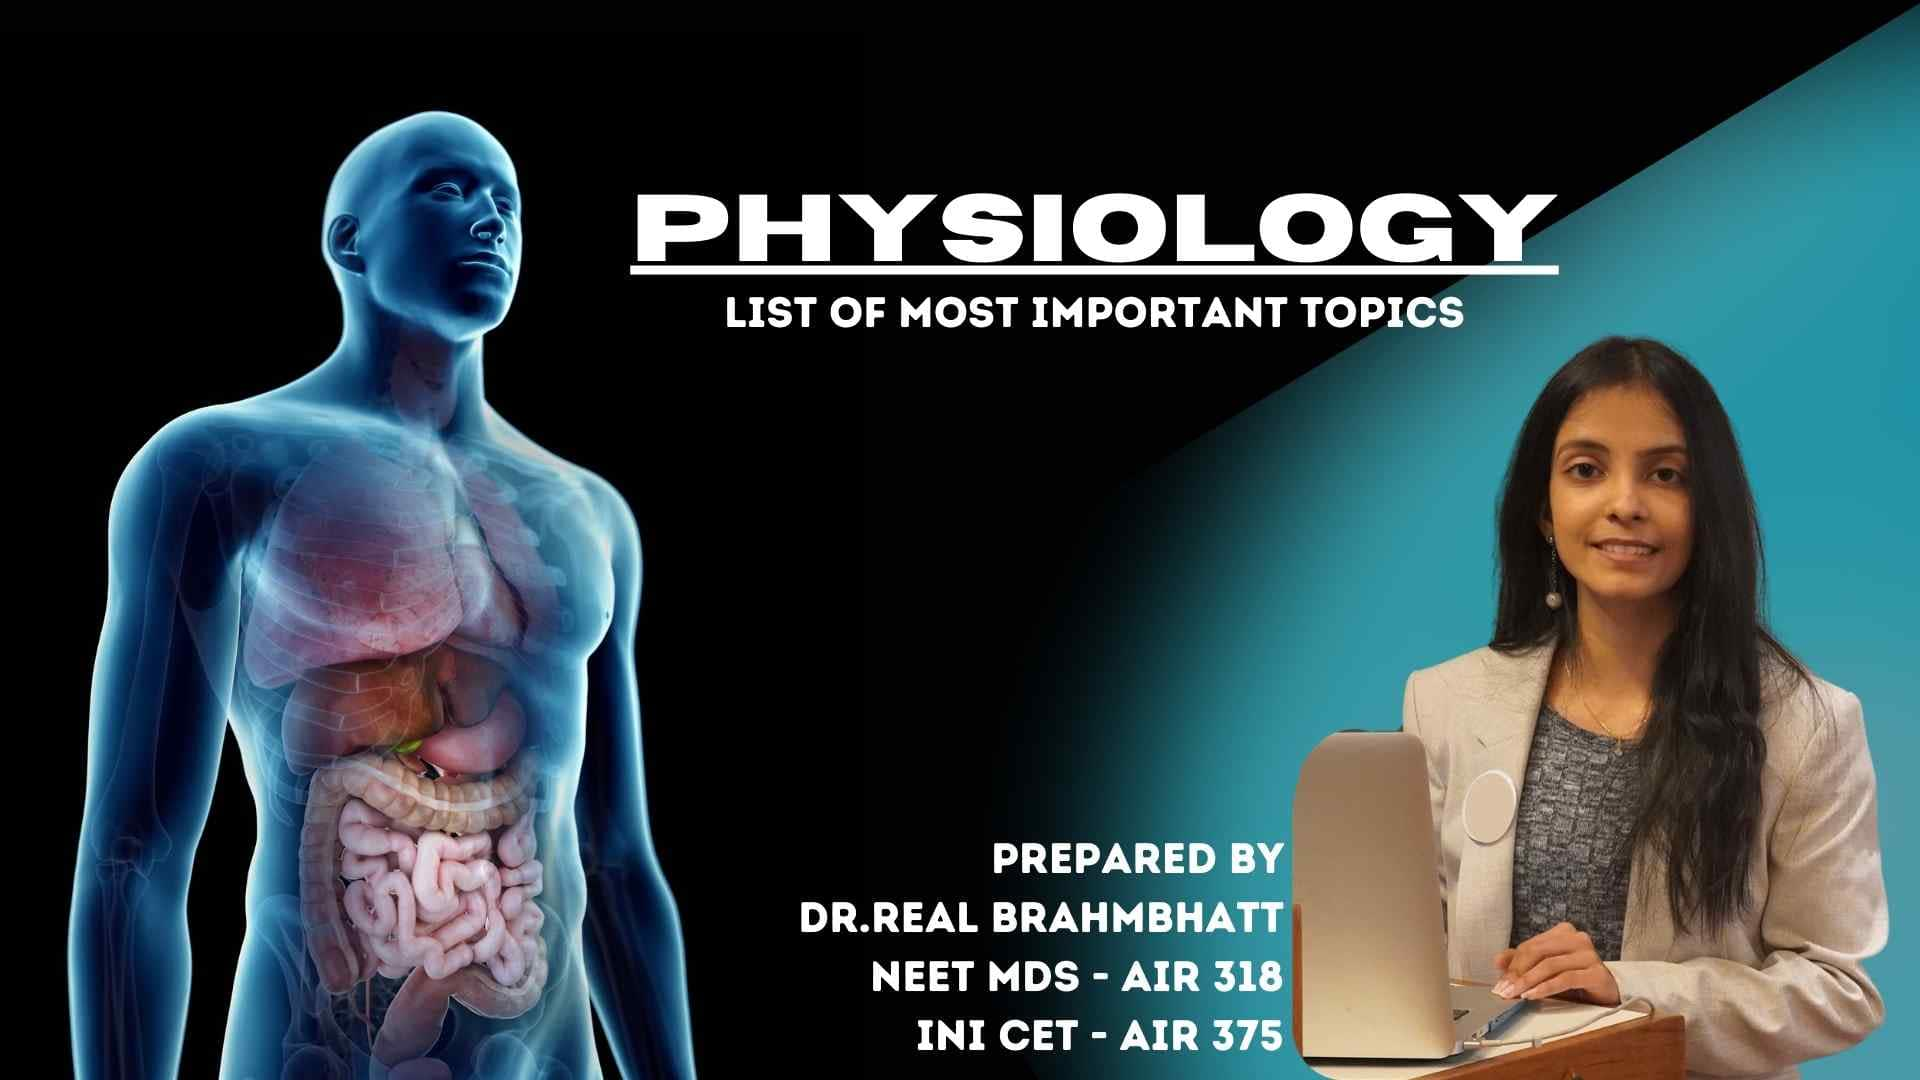 physiology for neet mds